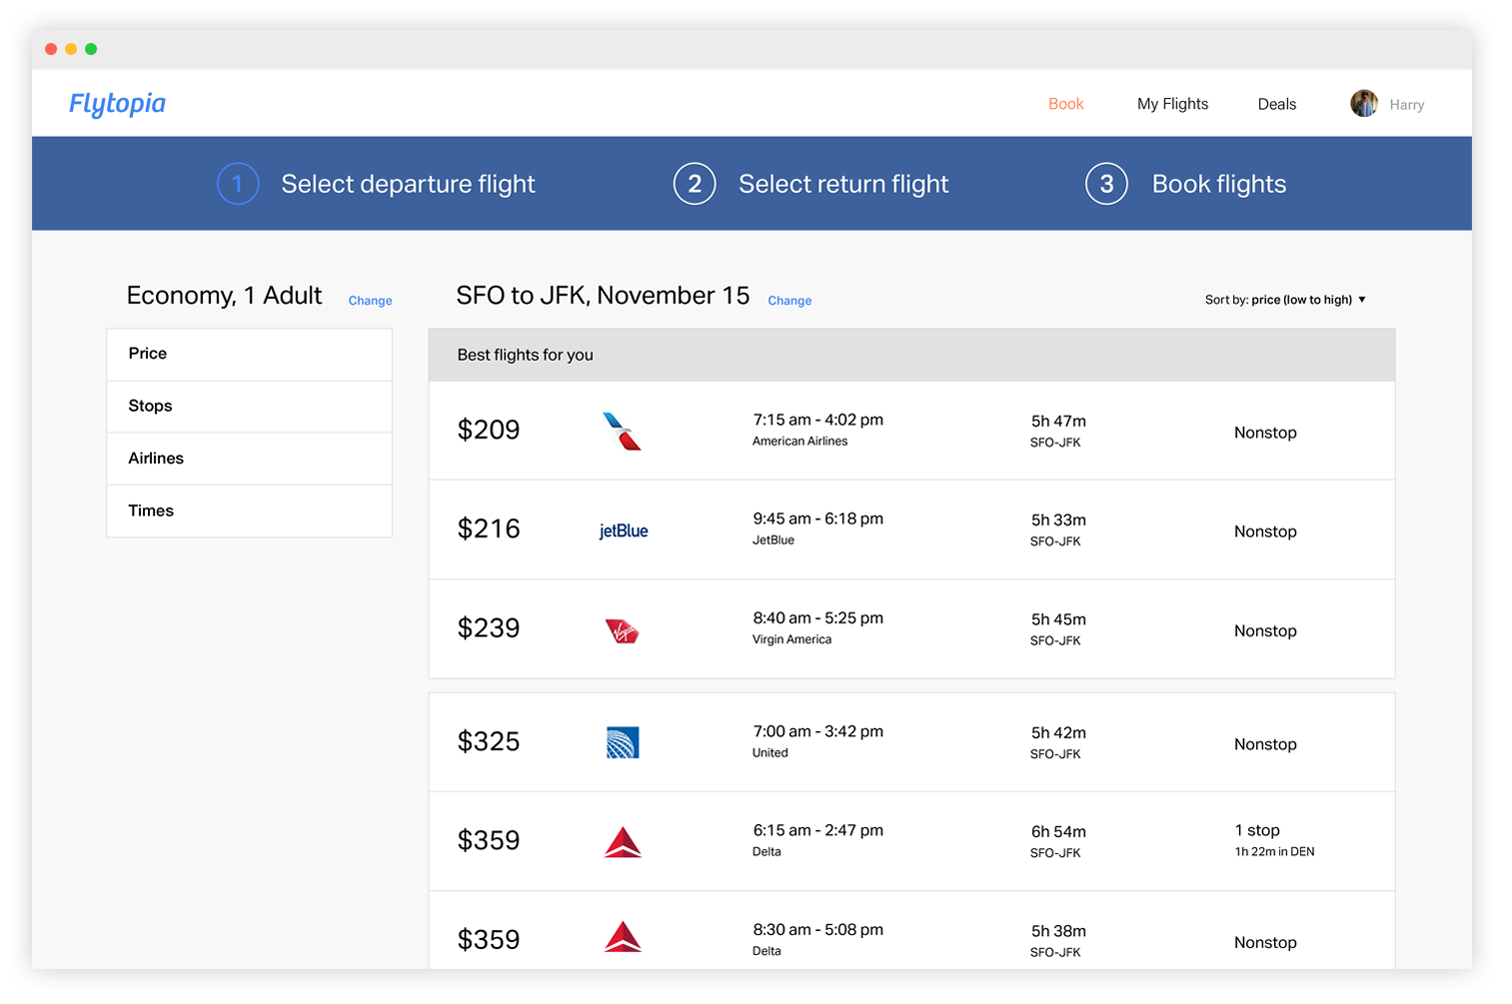 Flights organized by your preferences